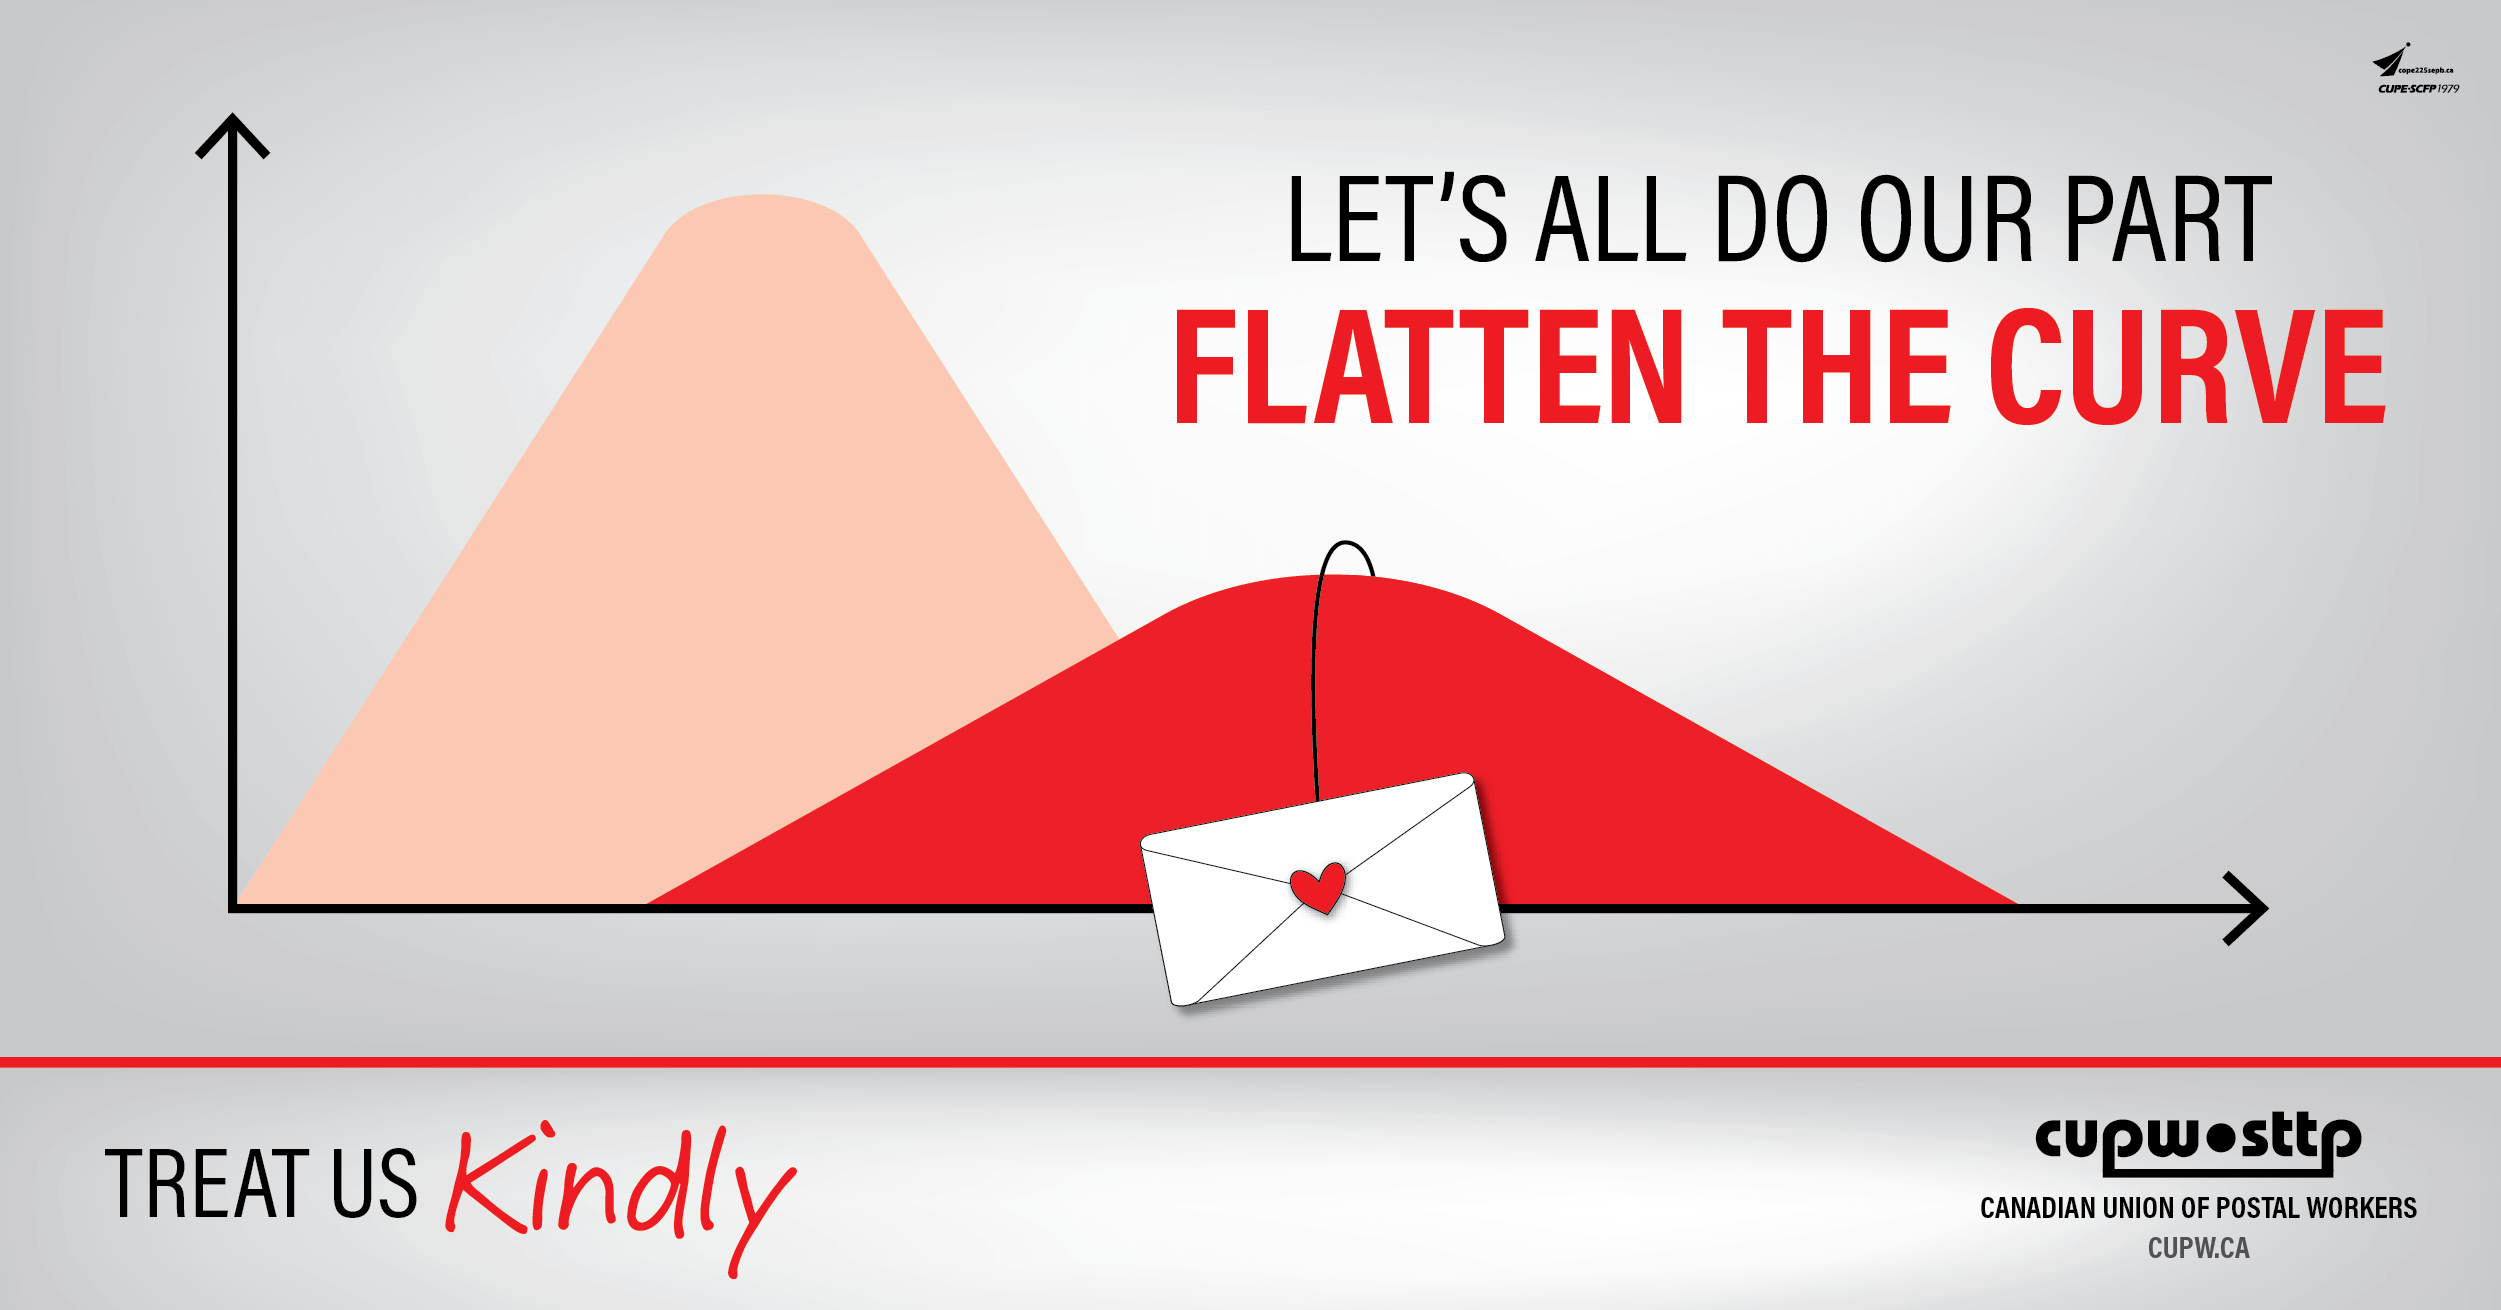 Let's all do our part - Flatten the curve